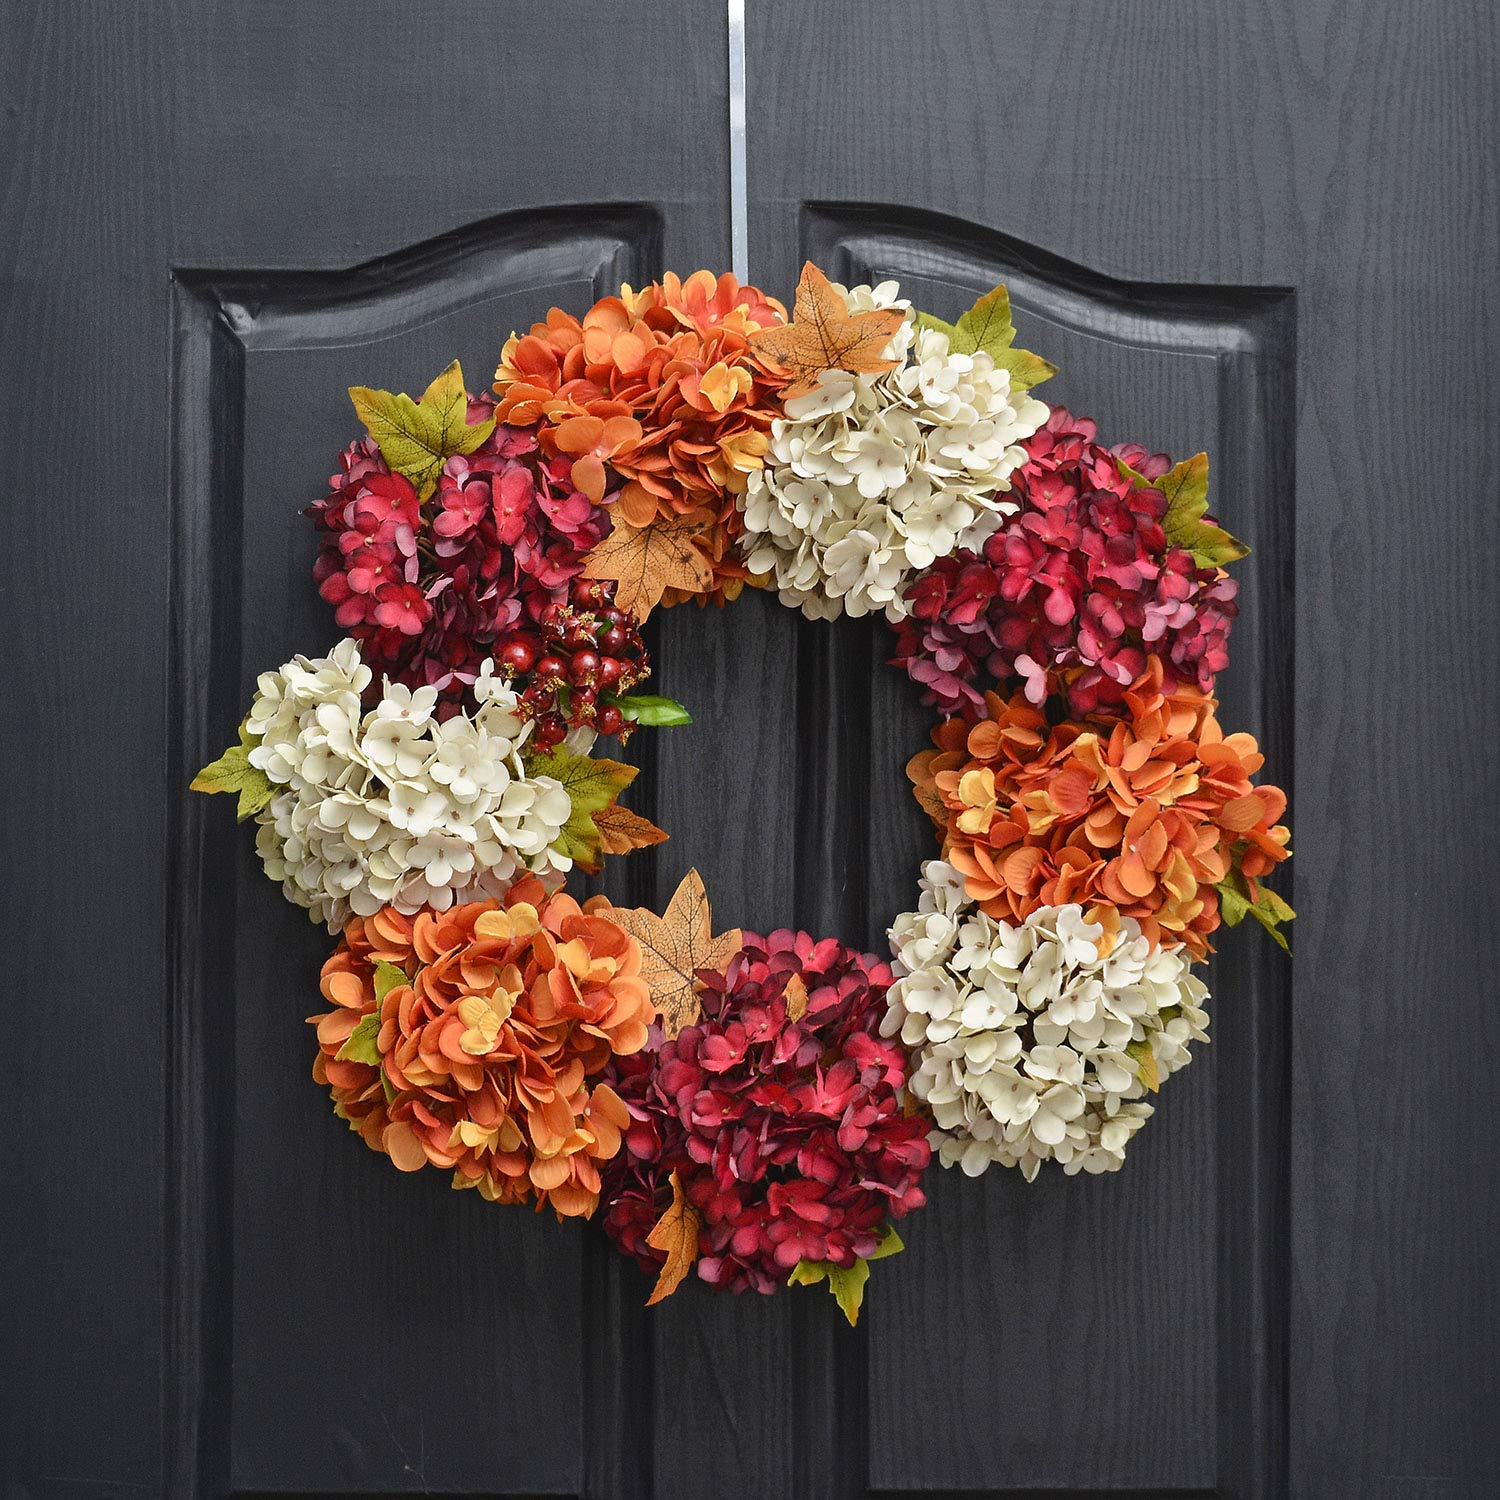 Cheap Inch Grapevine Wreath Find Inch Grapevine Wreath Deals On Line At Alibaba Com